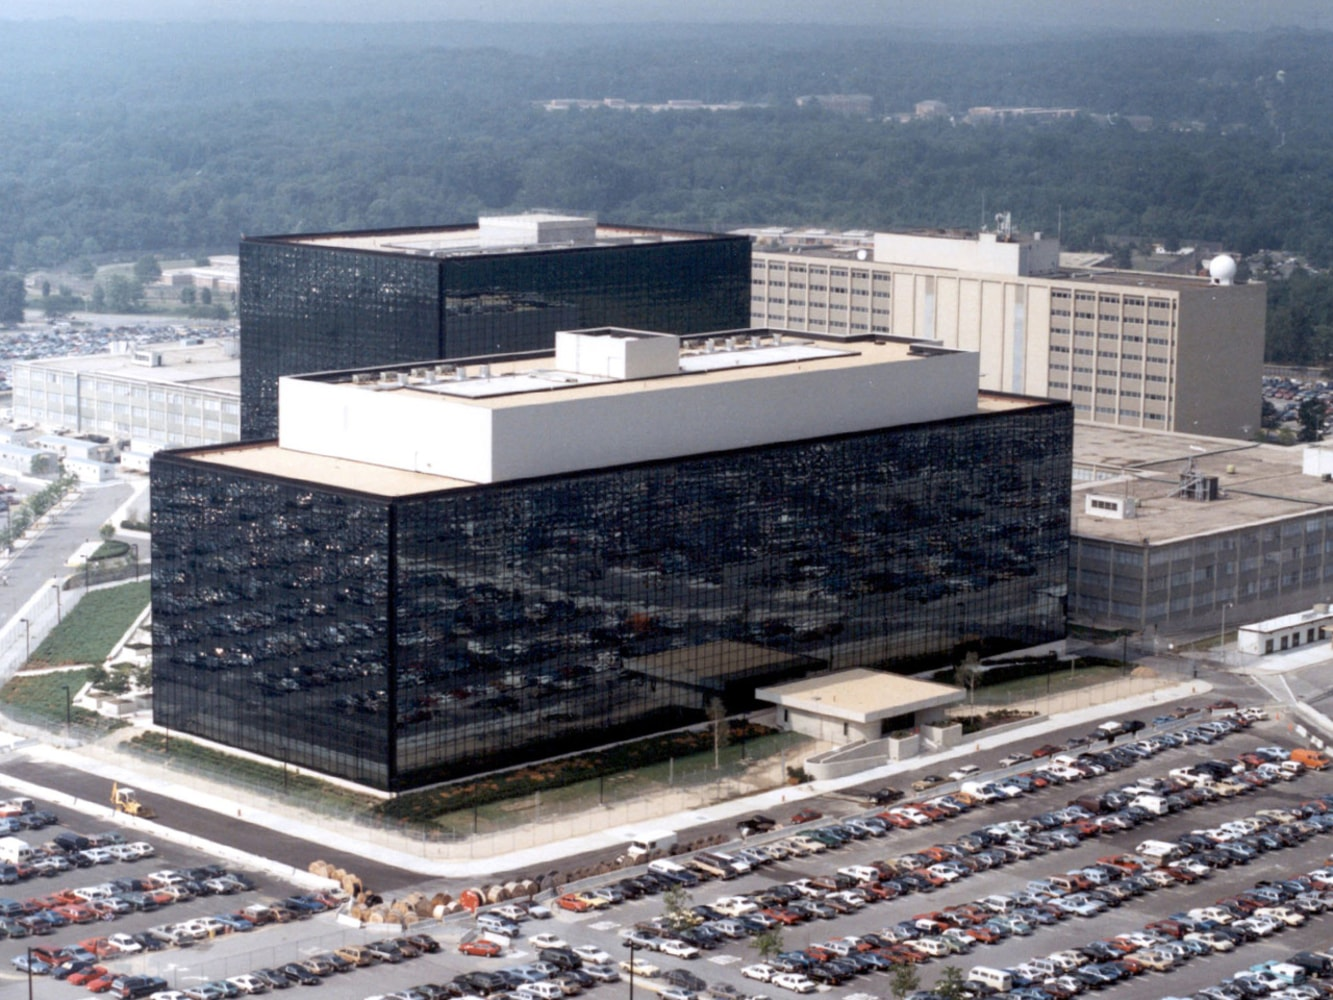 NSA defends global cellphone tracking as legal